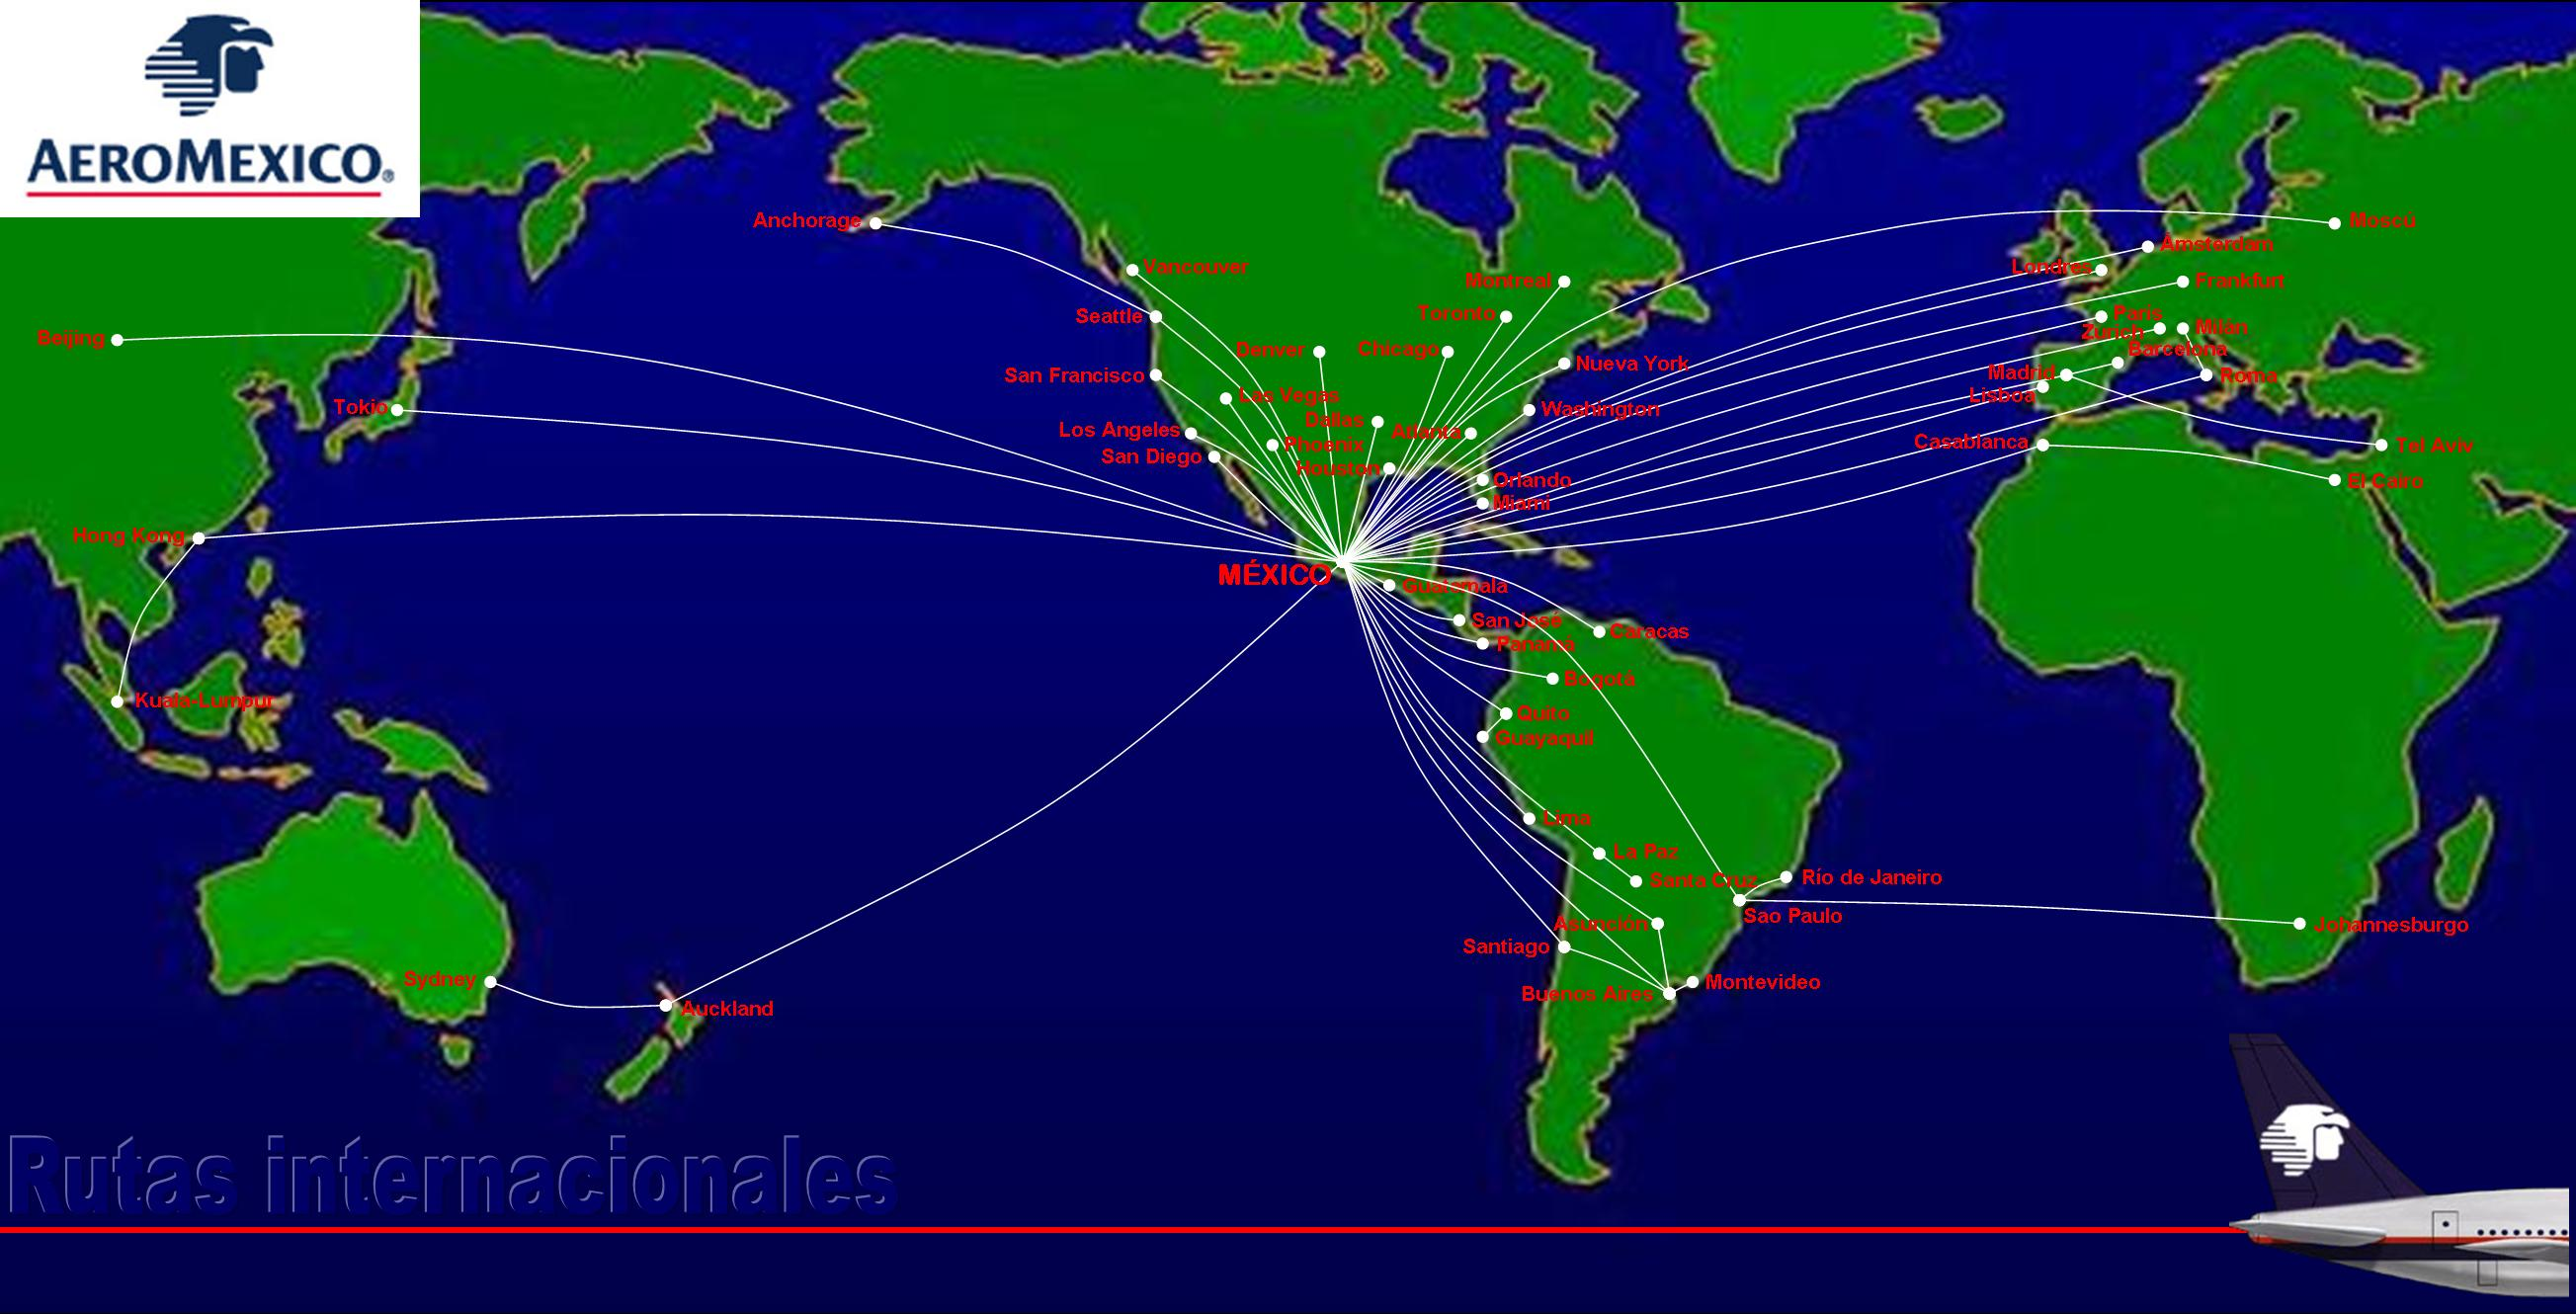 Global coverage by AeroMexico Airlines